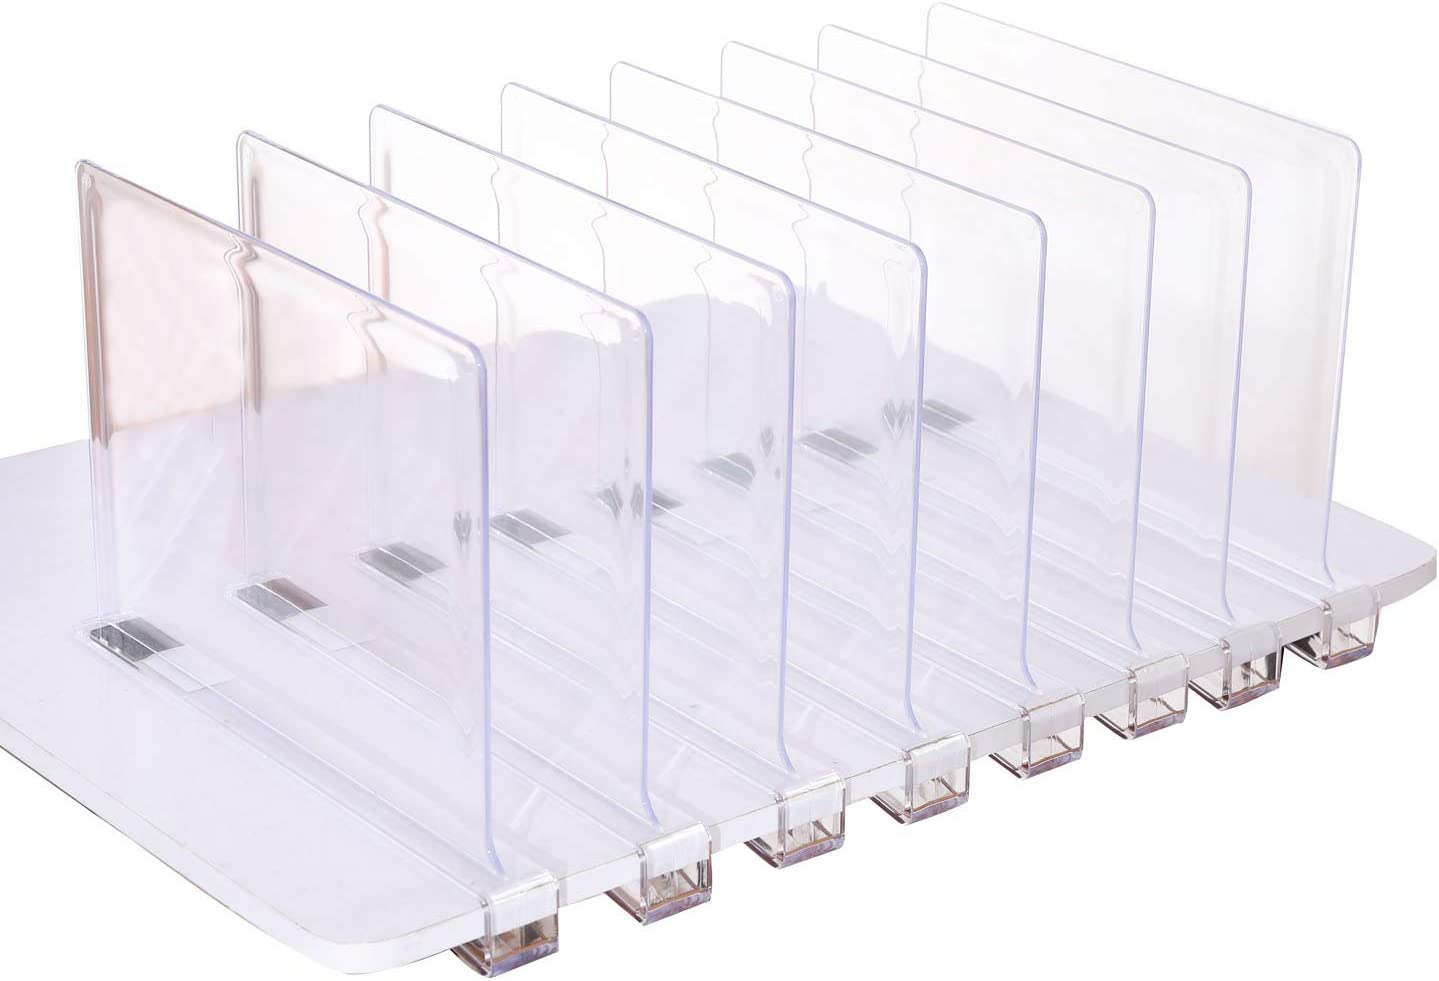 Ideal for for Closets Kitchen Bedroom HighFree Set of 4 Acrylic Shelf Dividers Useful Shelving Organzing Tool Without Drilling,Shelving Organization to Organize Clothes Books,Towels